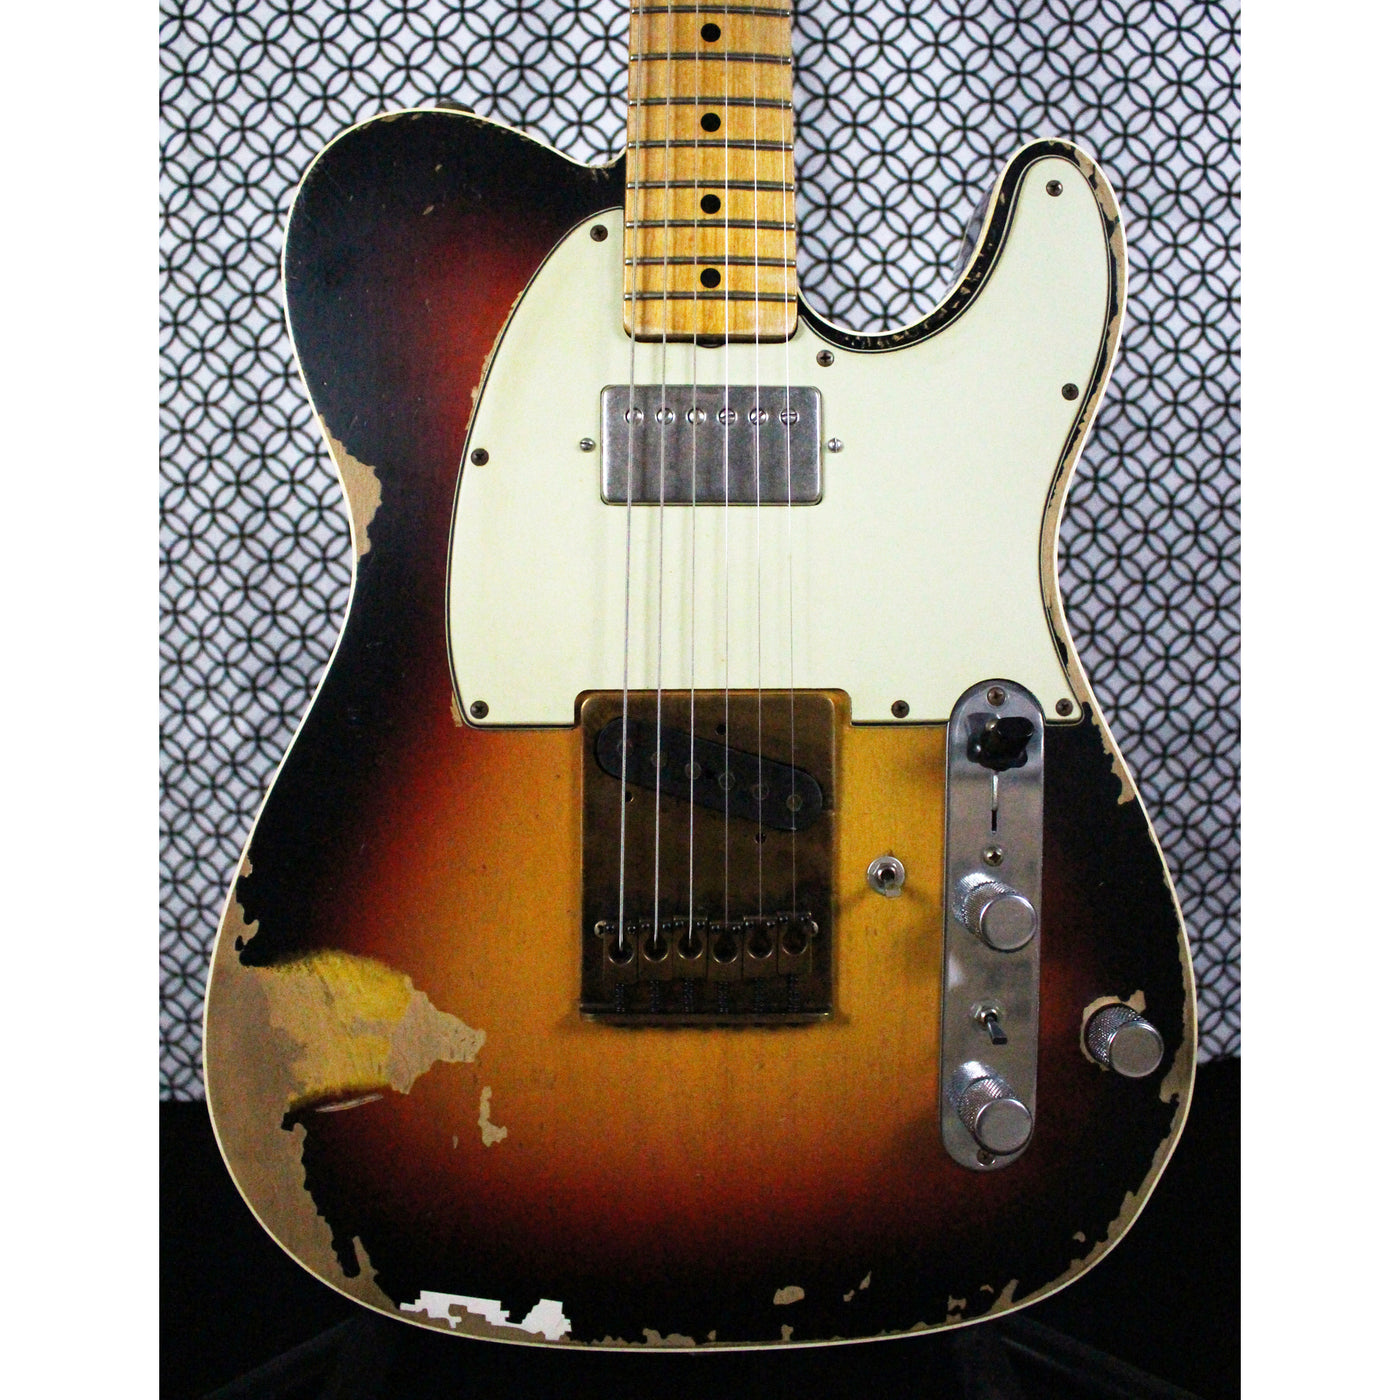 Andy Summers Telecaster Wiring Diagram Trusted Diagrams Fender Broadcaster Best 2018 Custom